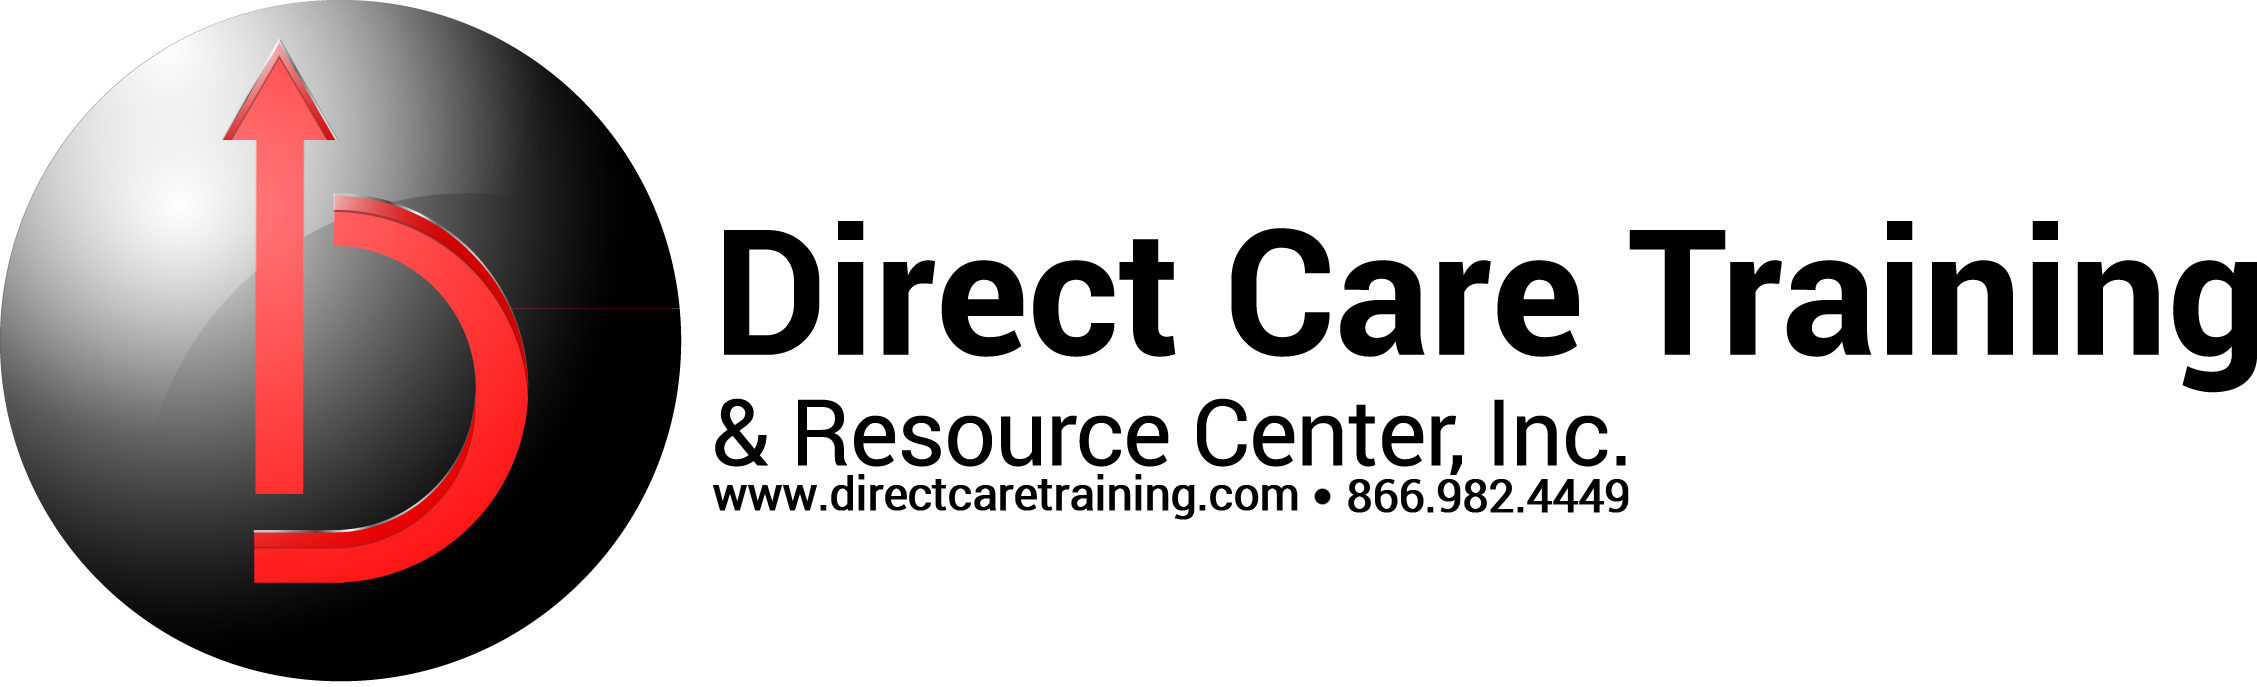 Direct Care Training